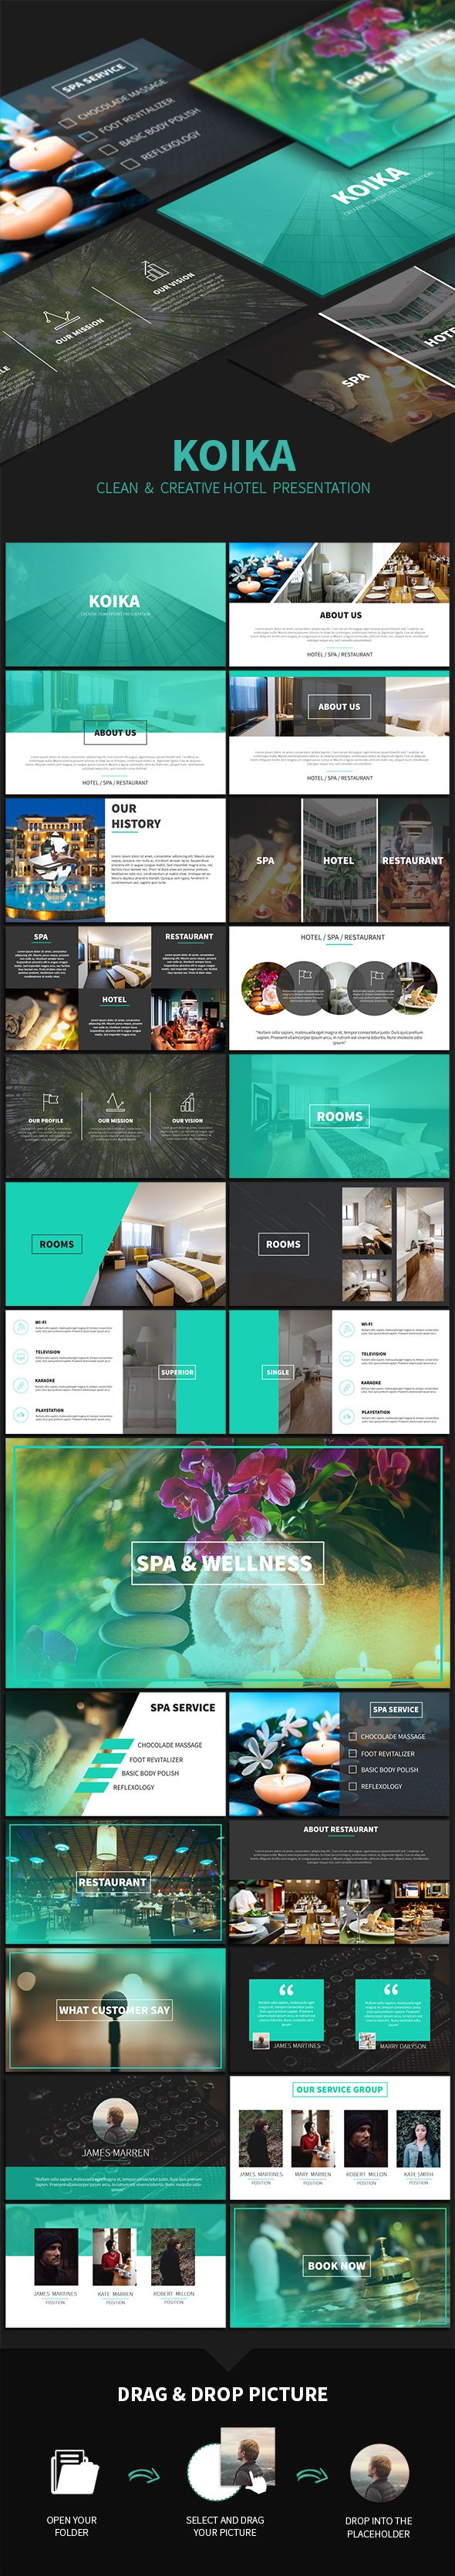 Koika Powerpoint Presentation Template - PowerPoint Templates Presentation Templates